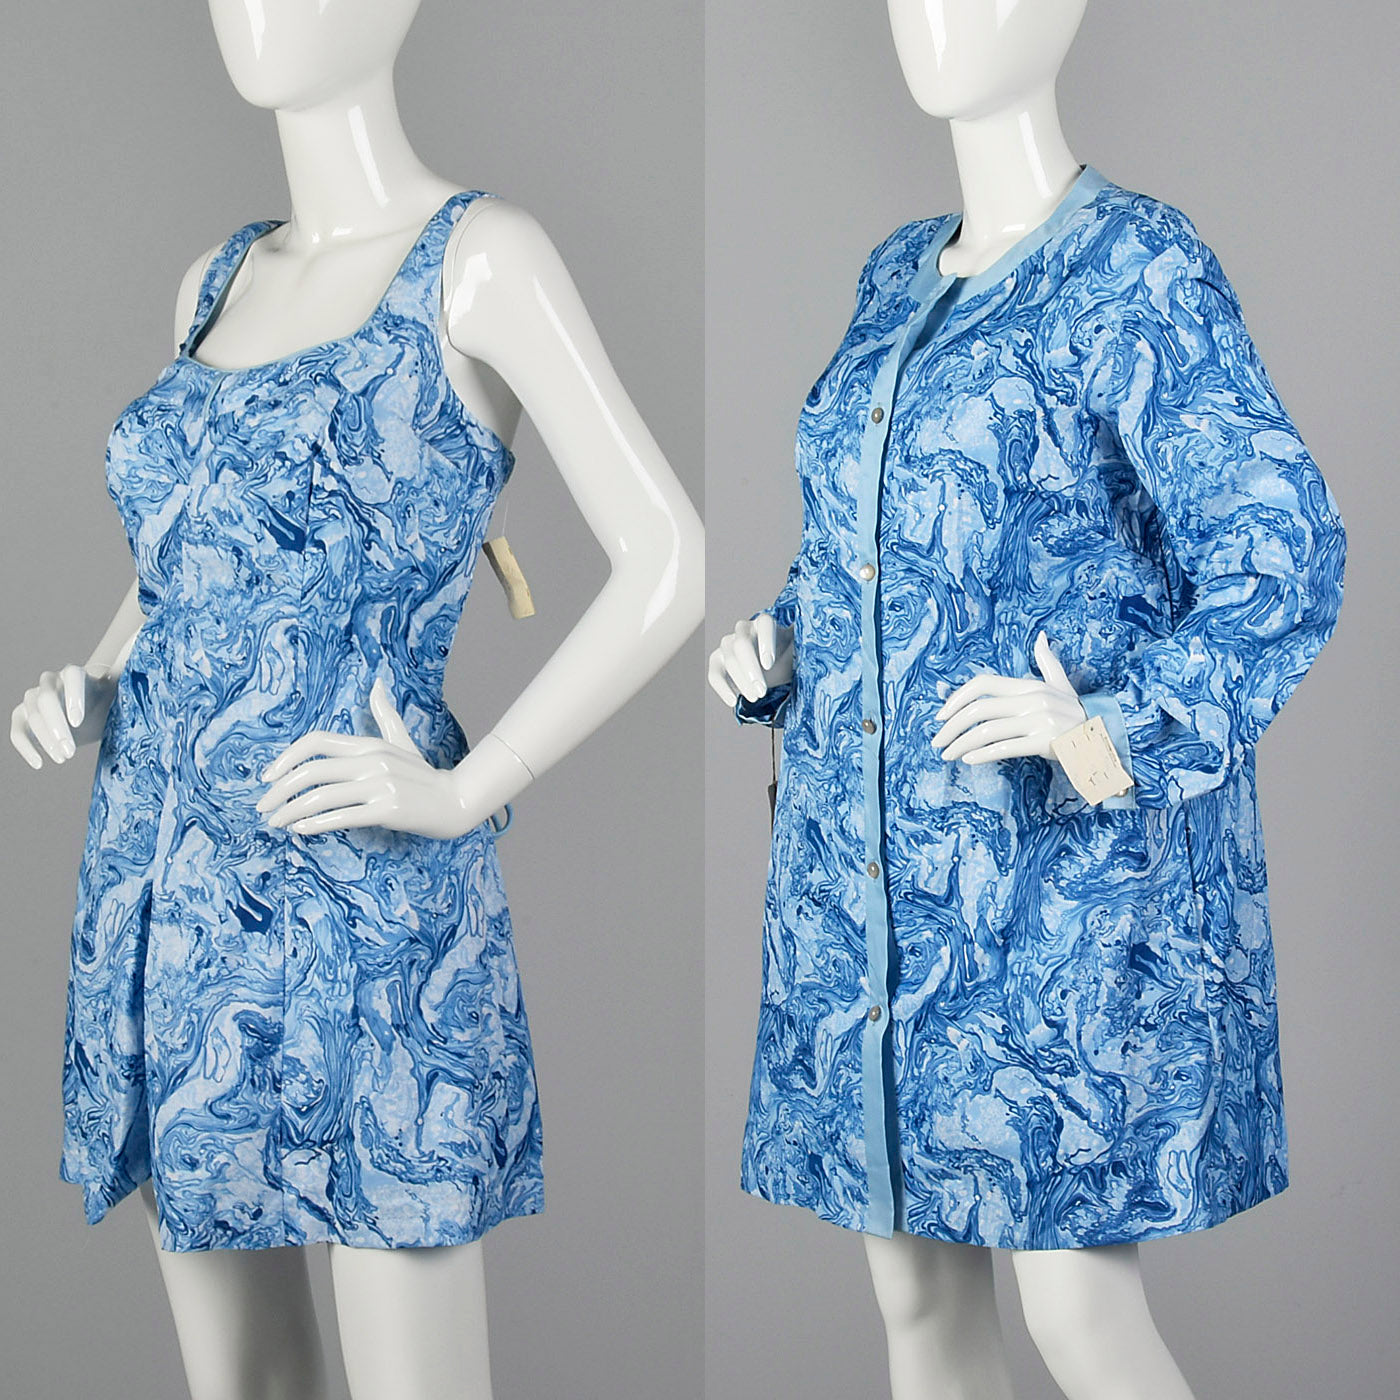 1960s Abercrombie & Fitch Deadstock Swim Romper & Cover-Up